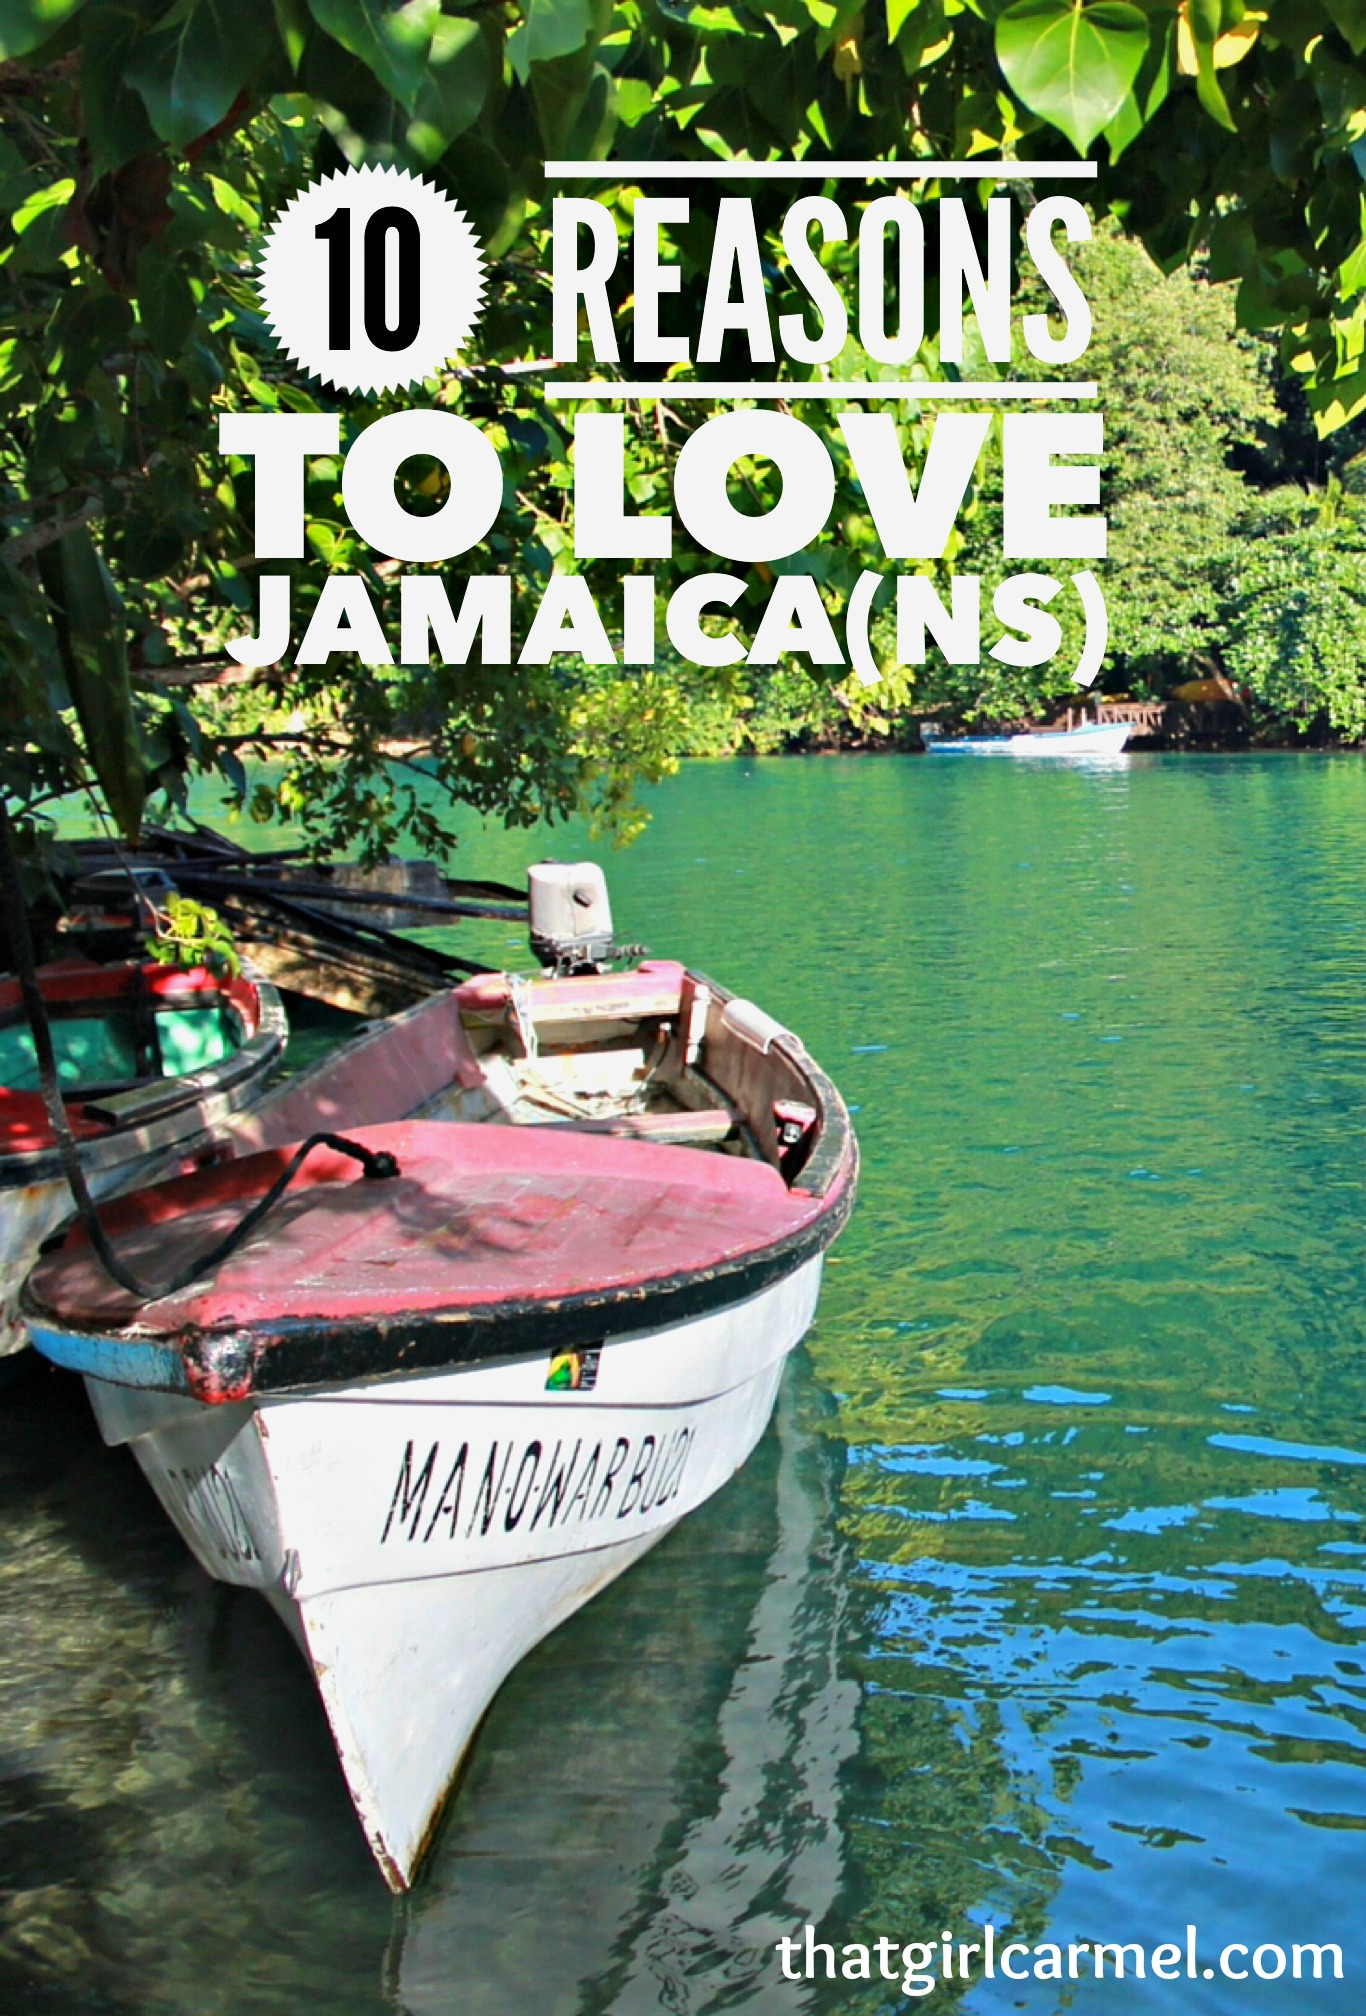 10 Things I Adore About Jamaicans Thatgirlcarmel